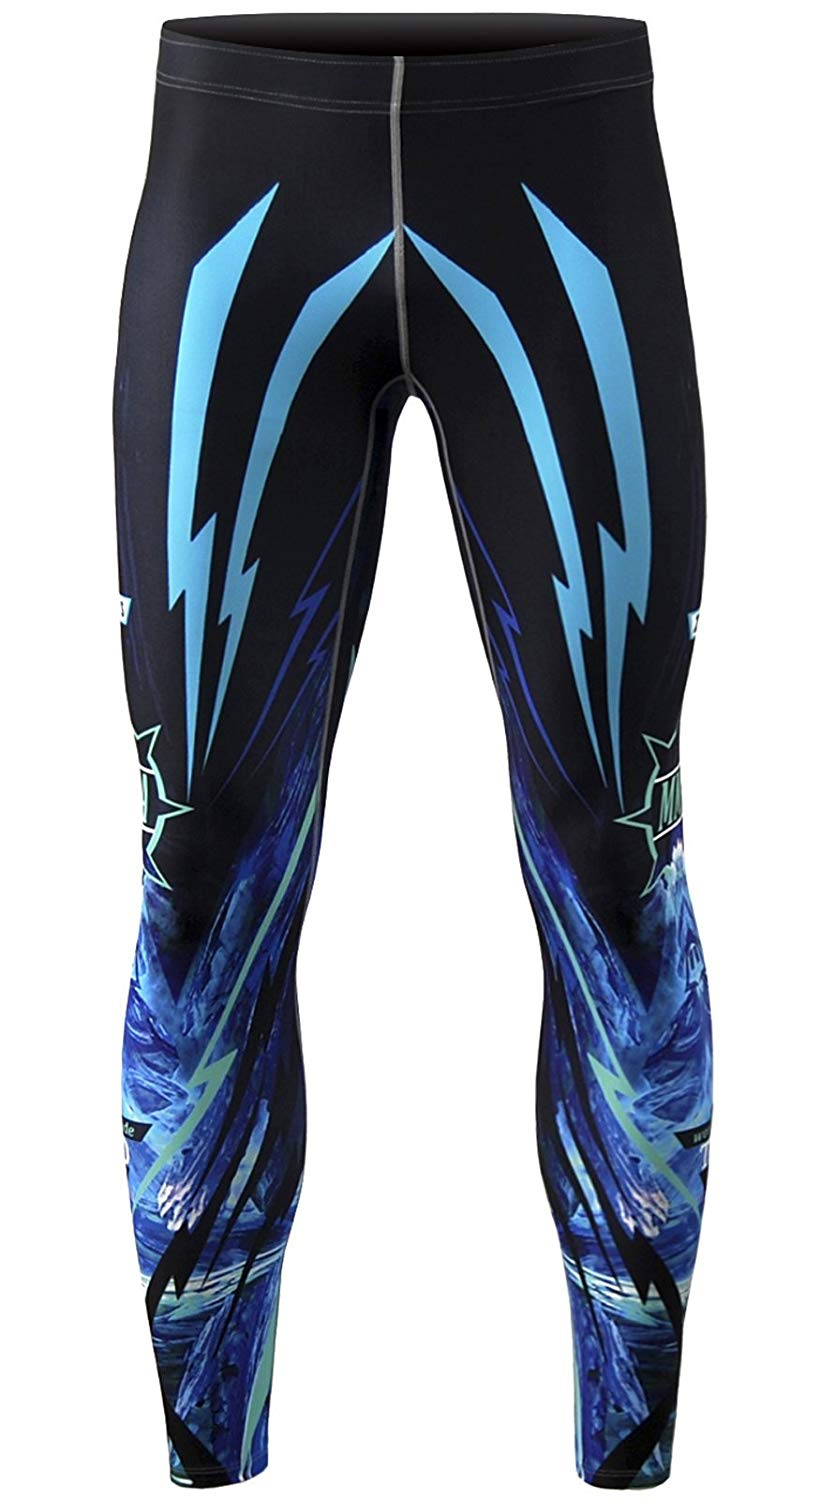 zipravs Mens Athletic Compression Base Layers Running Exercise Fitness MMA Pants Tights